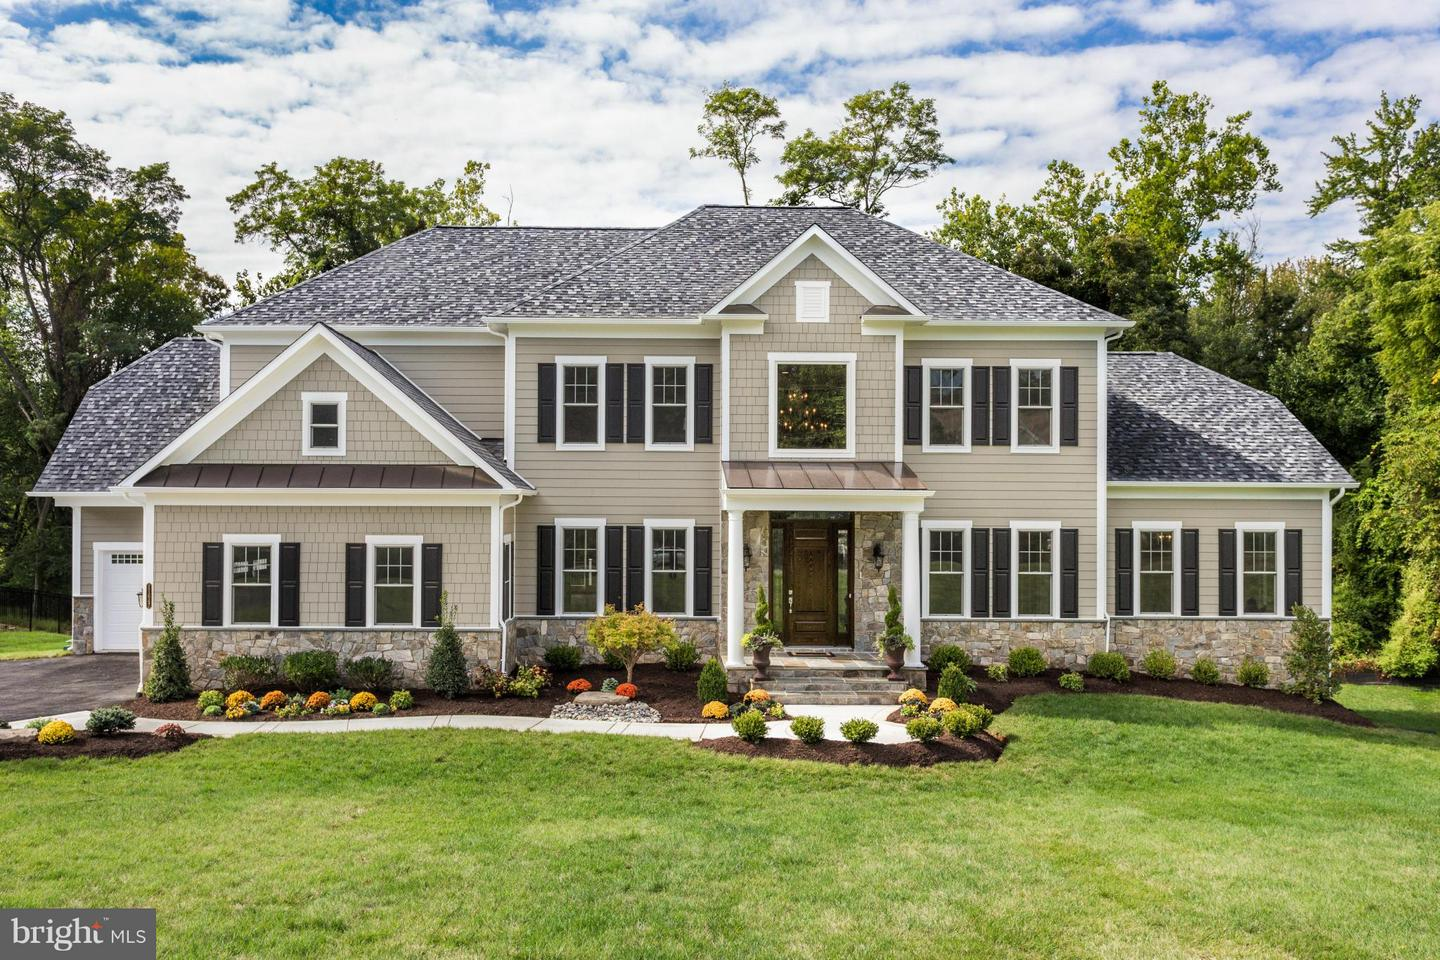 Single Family Home for Sale at 3859 Ganell Place 3859 Ganell Place Fairfax, Virginia 22033 United States